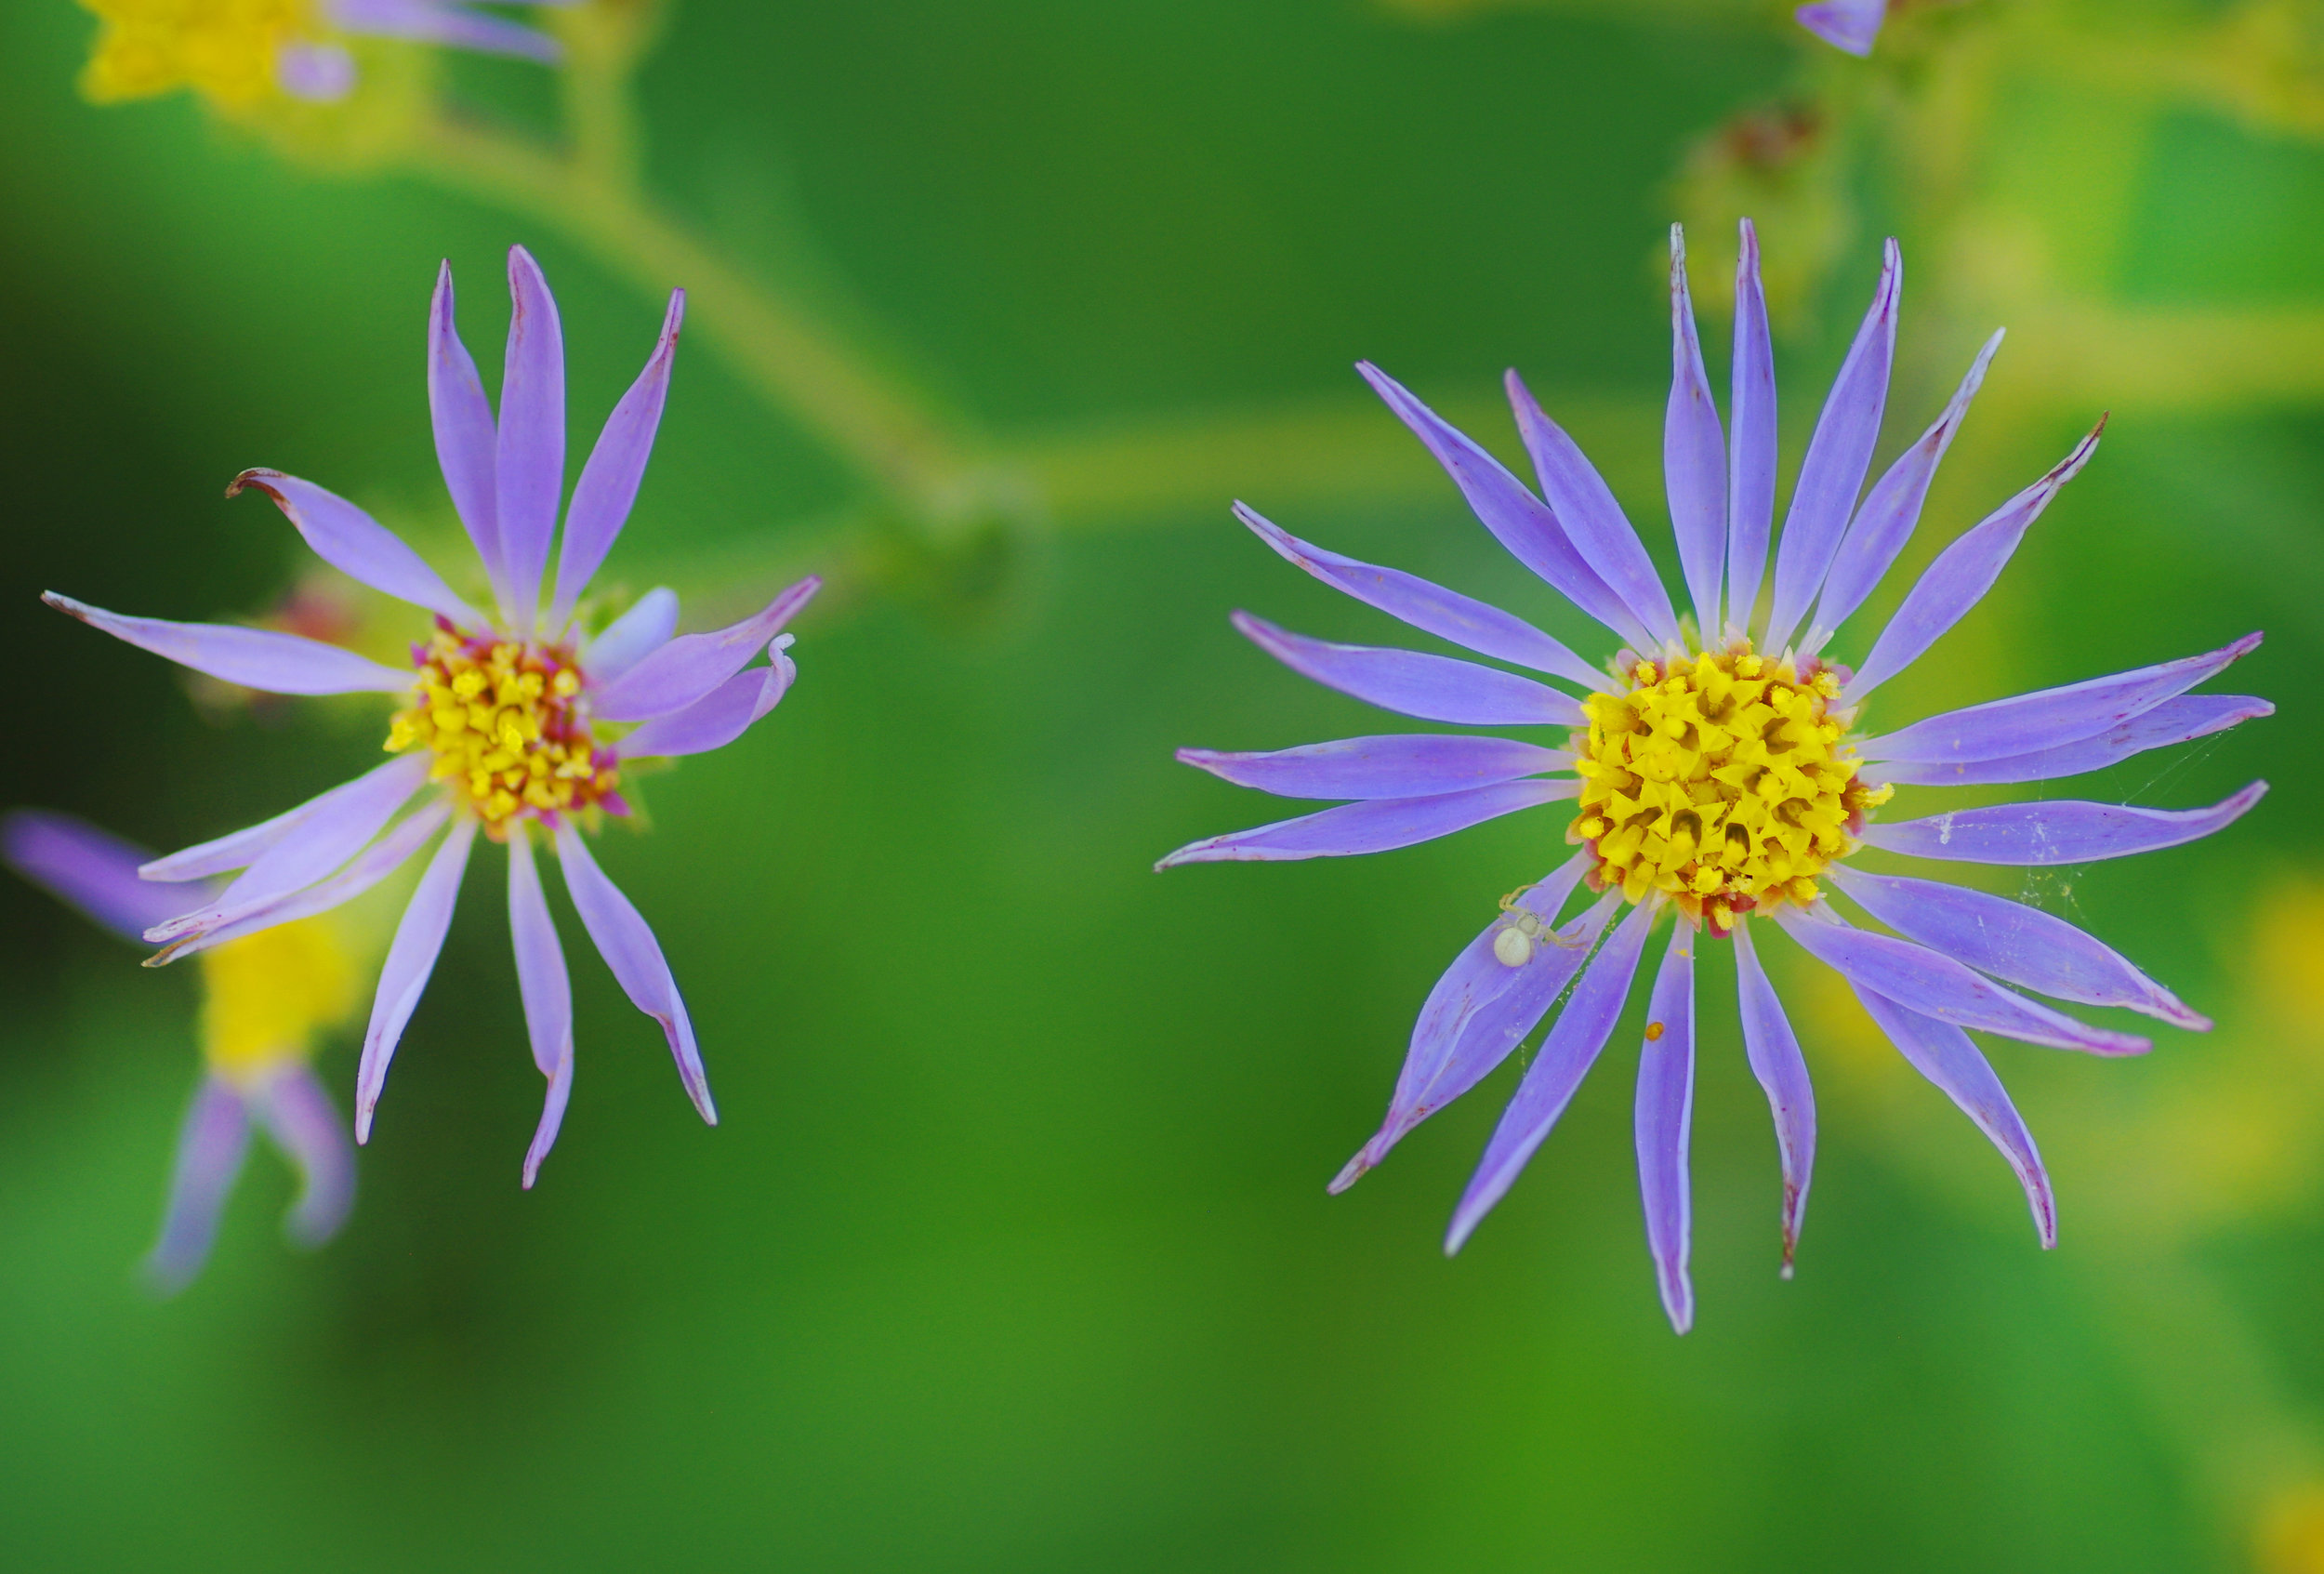 two purple flowers.jpg